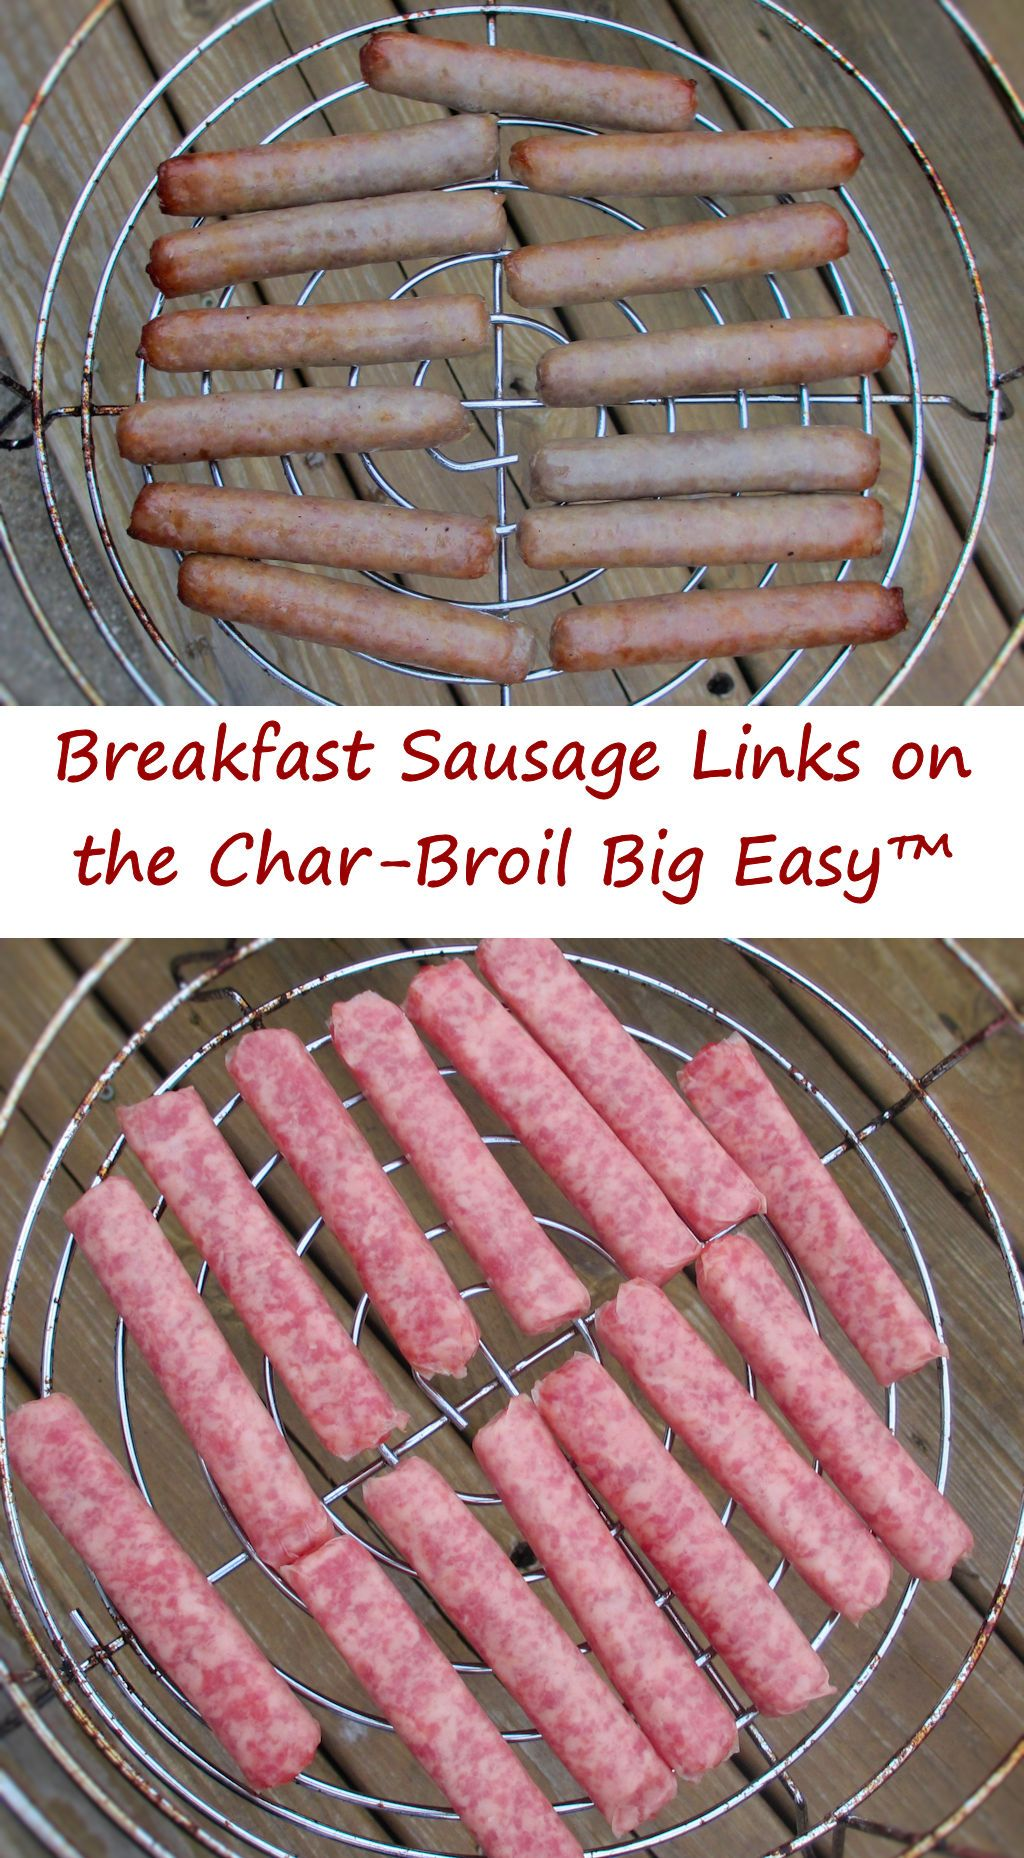 Breakfast Sausage Links on the CharBroil Big Easy